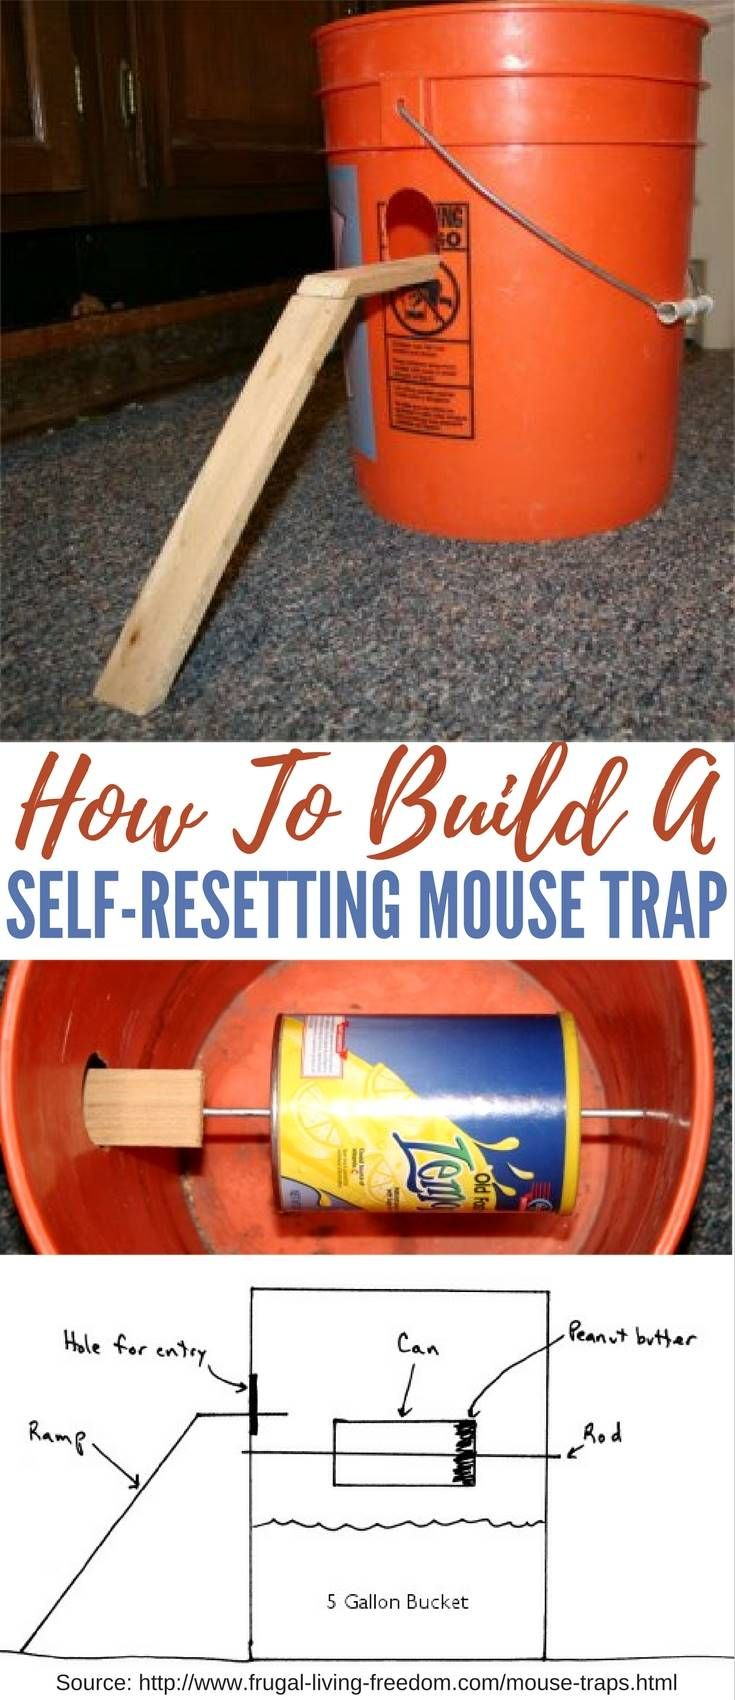 How To Build A Self-Resetting Mouse Trap — These 5-gallon bucket mouse traps are cheap and easy to build, easy to use and easy to service. I know the regular mouse traps are cheap but this trap can also catch rats too.